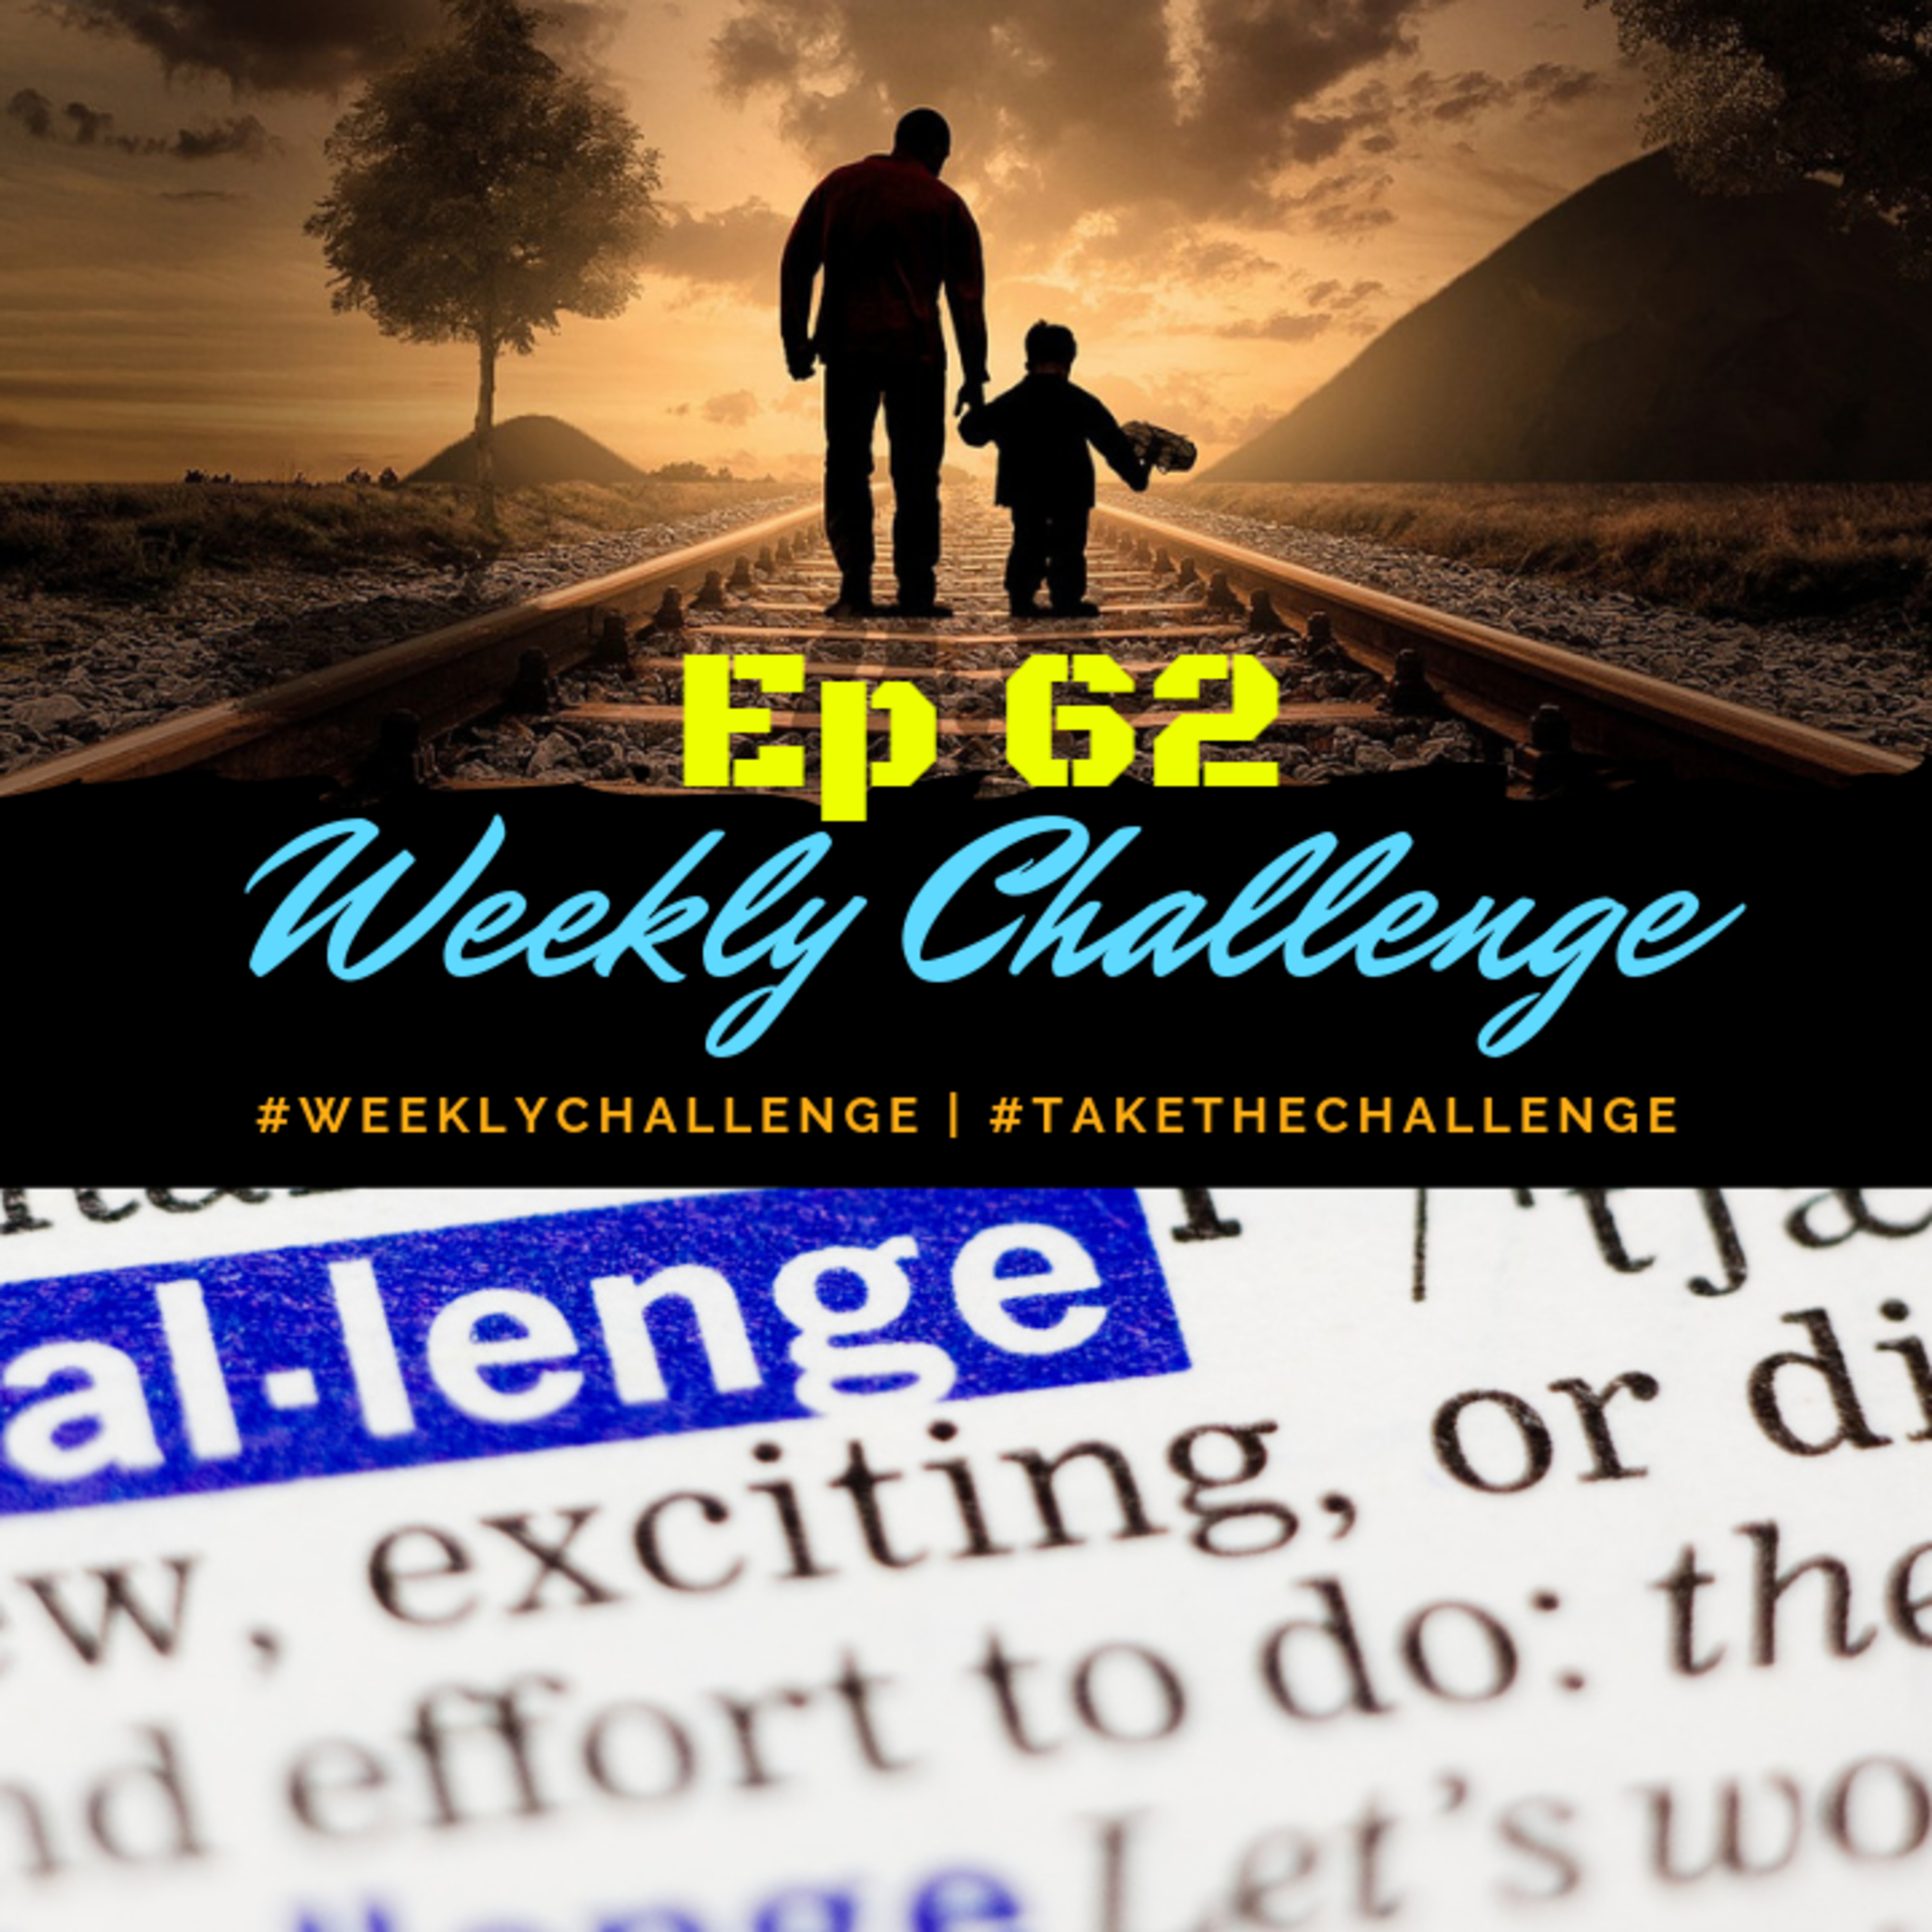 Build trust, be trustworthy | Weekly Challenge From 62